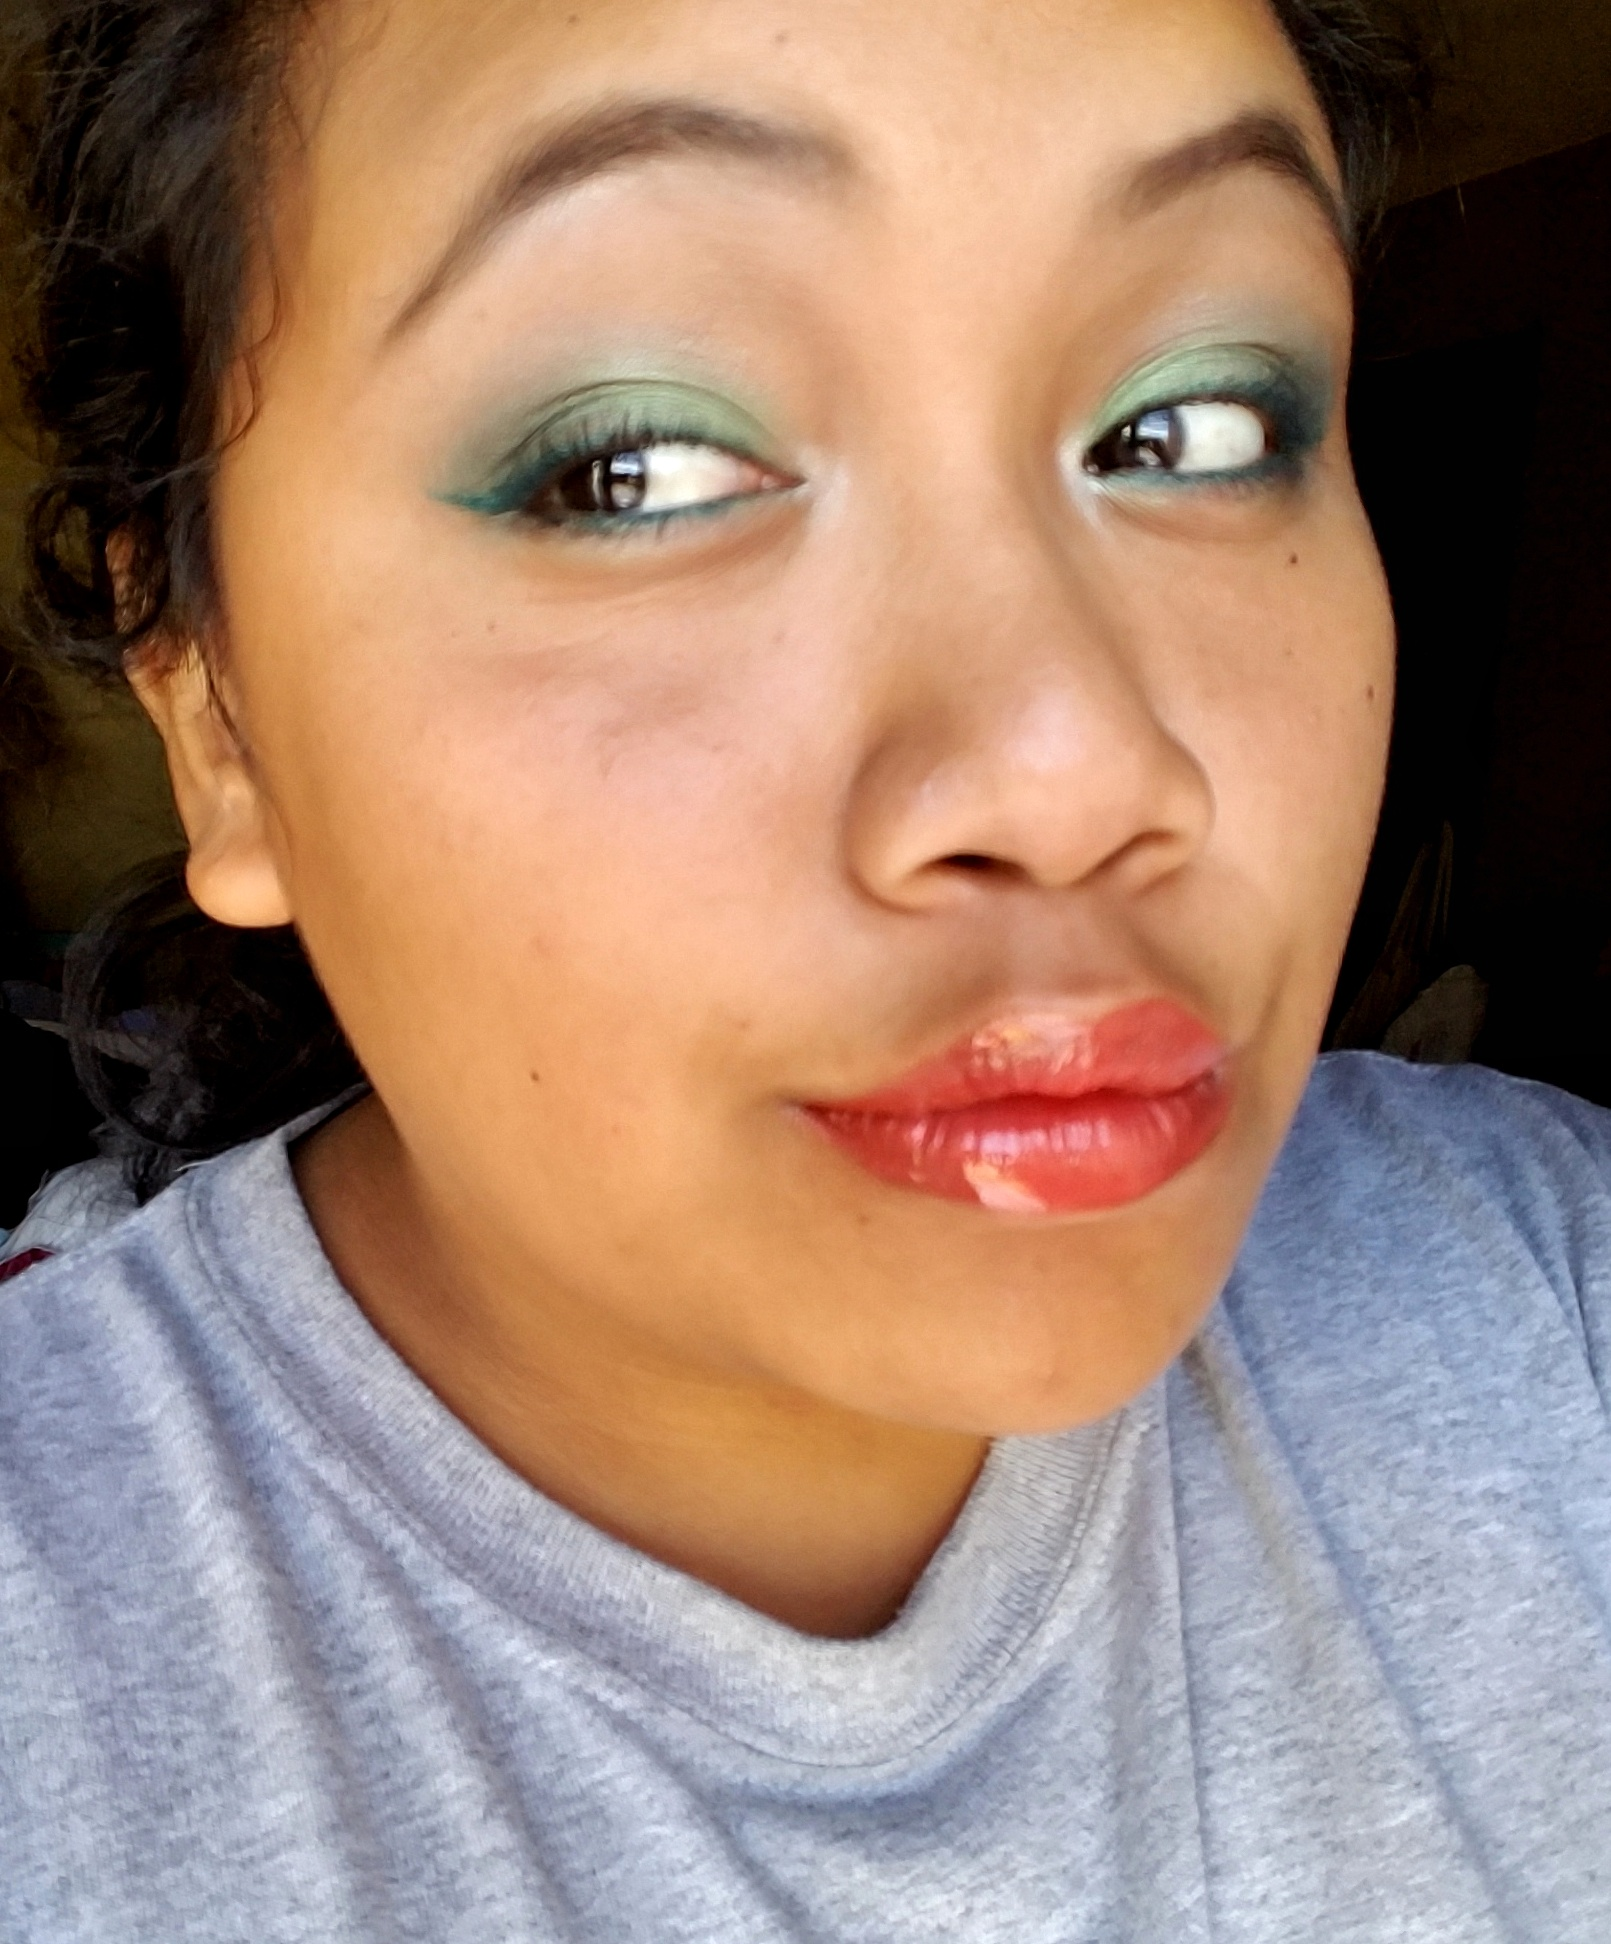 makeup monday, makeup, fotd, face of the day, beyu cosmetics, BeYu, makeup palette, makeup first impressions, swatches, makeup look, makeup tutorial, summer makeup, BeYu cosmetics review, sensitive skin, makeup for brown eyes,